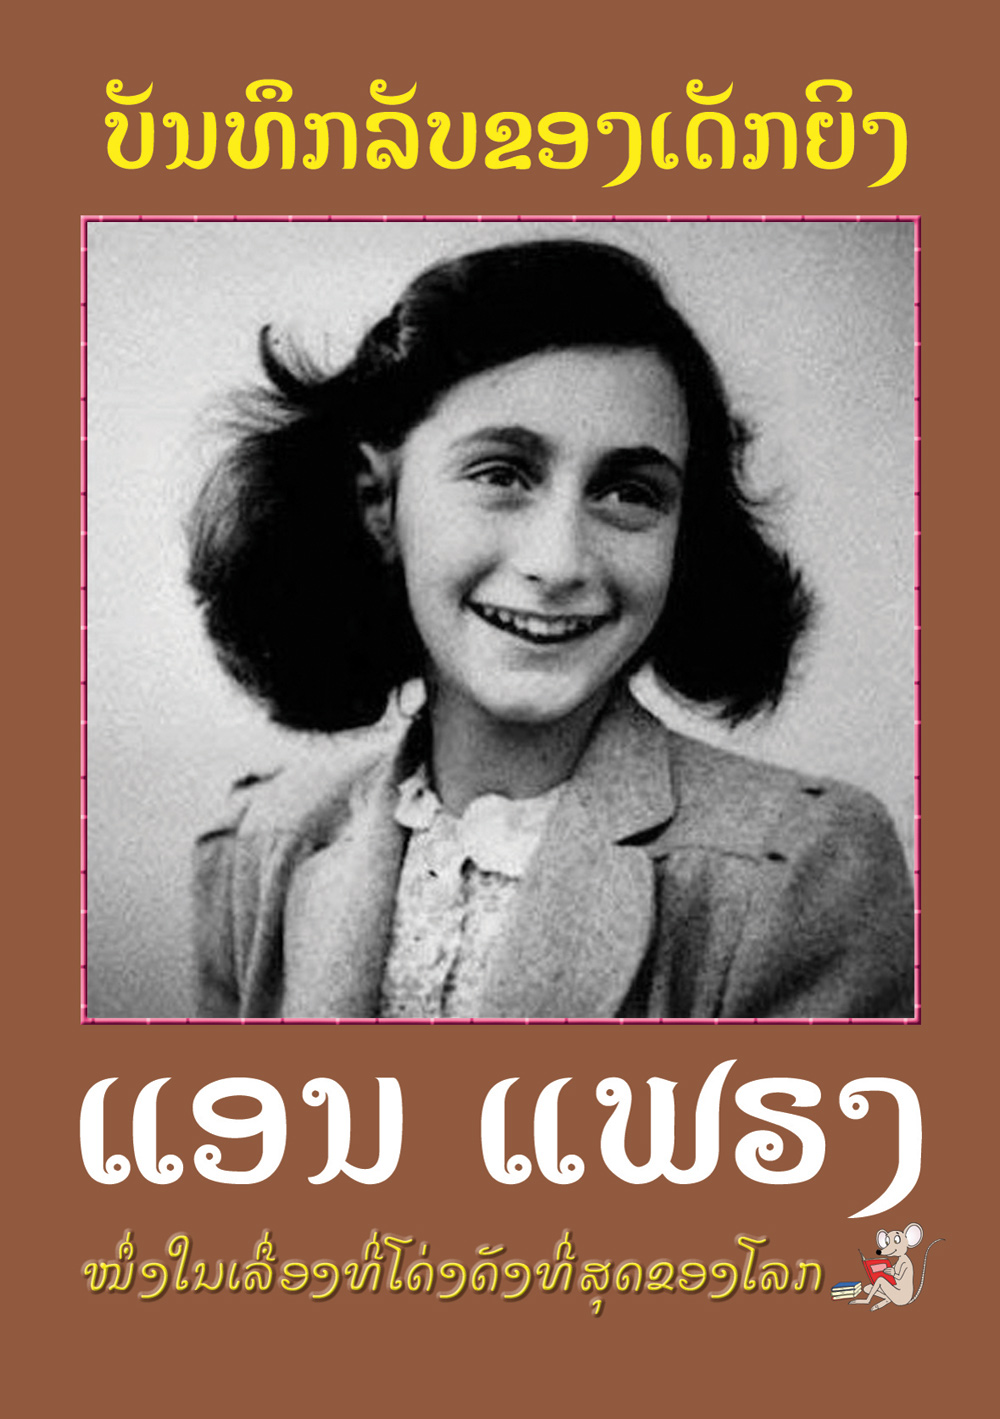 diary of a young girl Start studying anne frank the diary of a young girl learn vocabulary, terms, and more with flashcards, games, and other study tools.